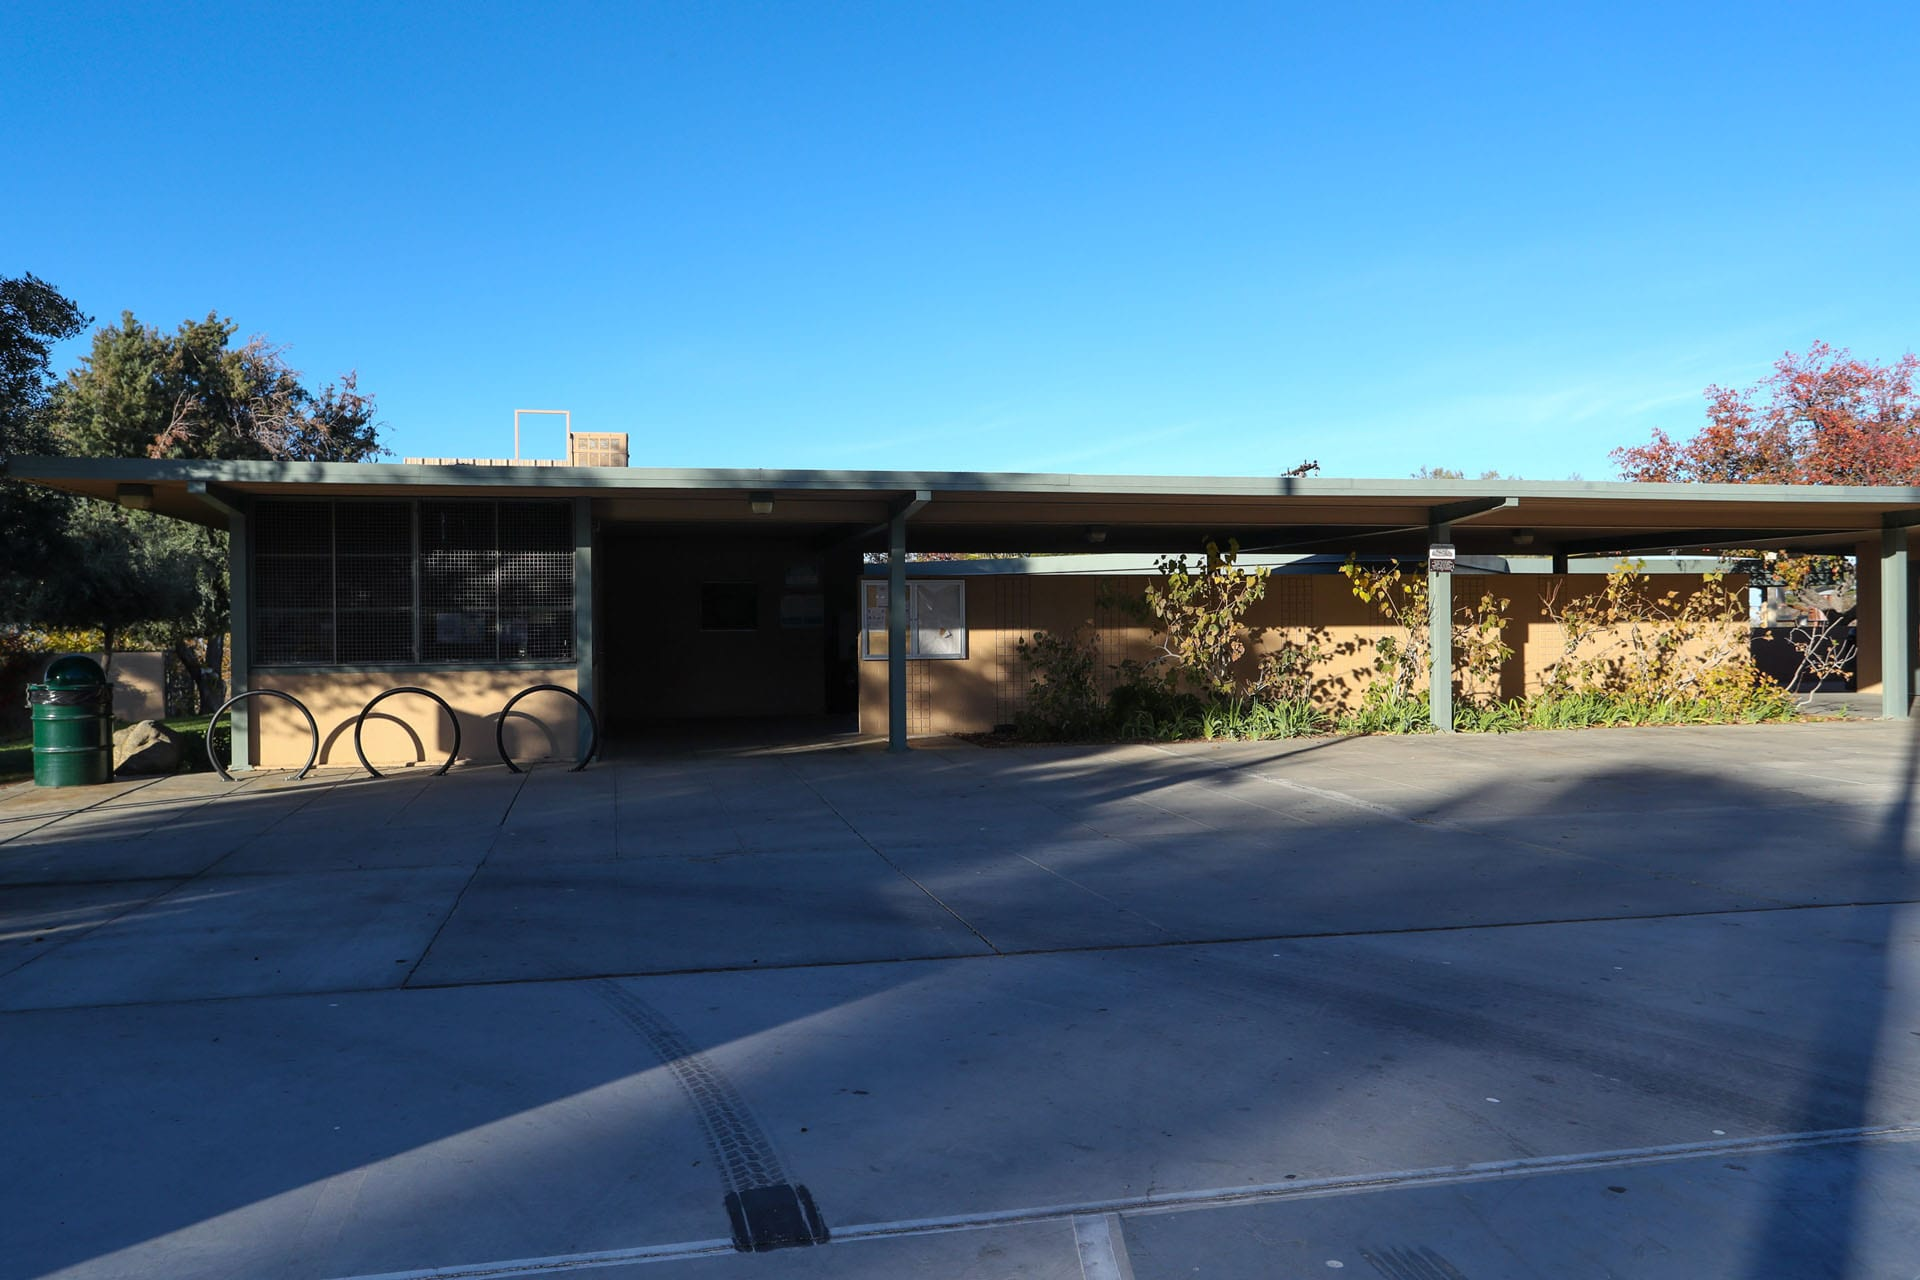 Facility with a bike rack in front